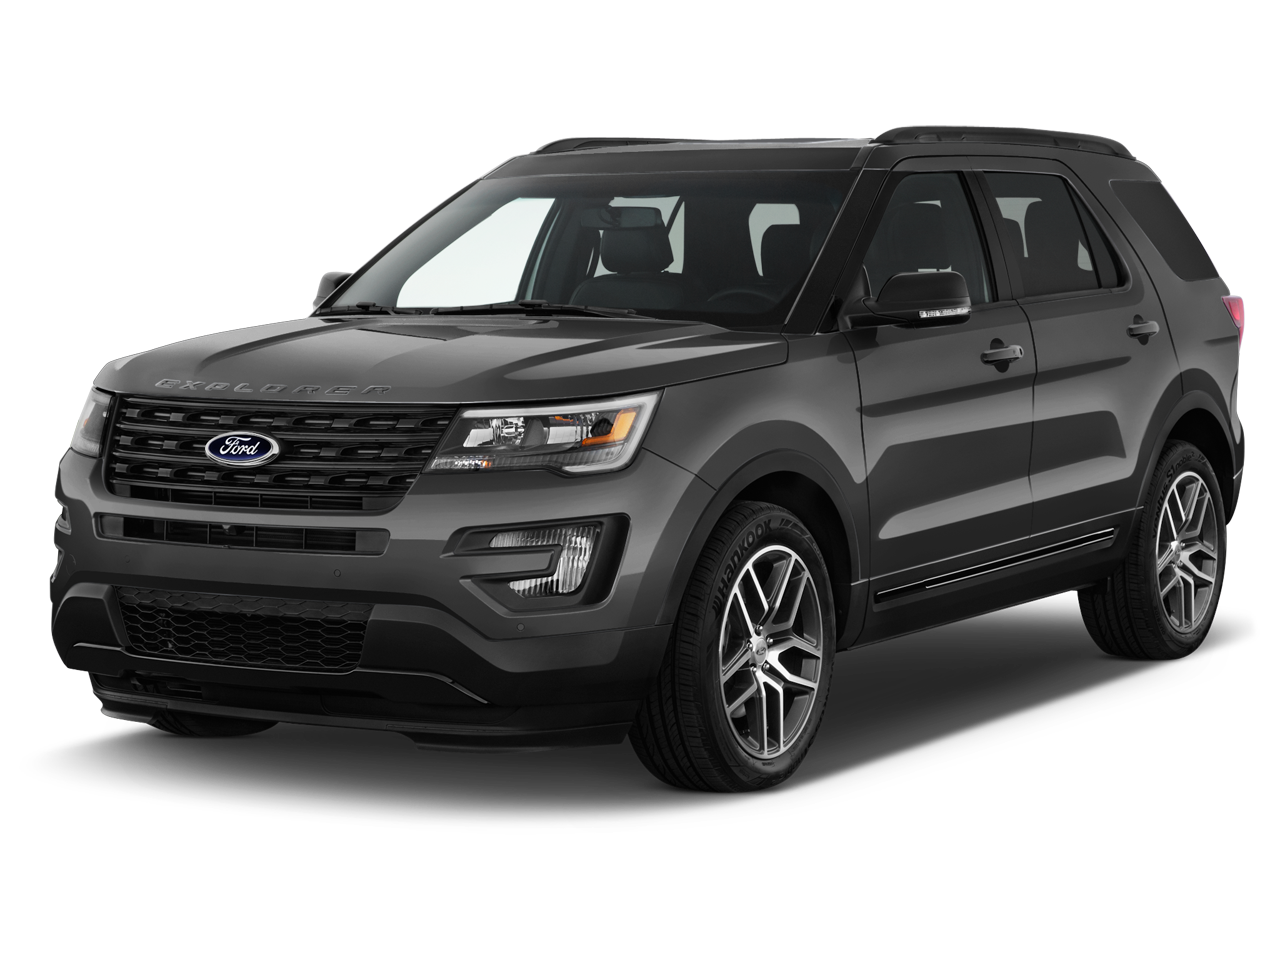 new 2017 ford explorer sport near oak lawn il golf mill ford. Black Bedroom Furniture Sets. Home Design Ideas